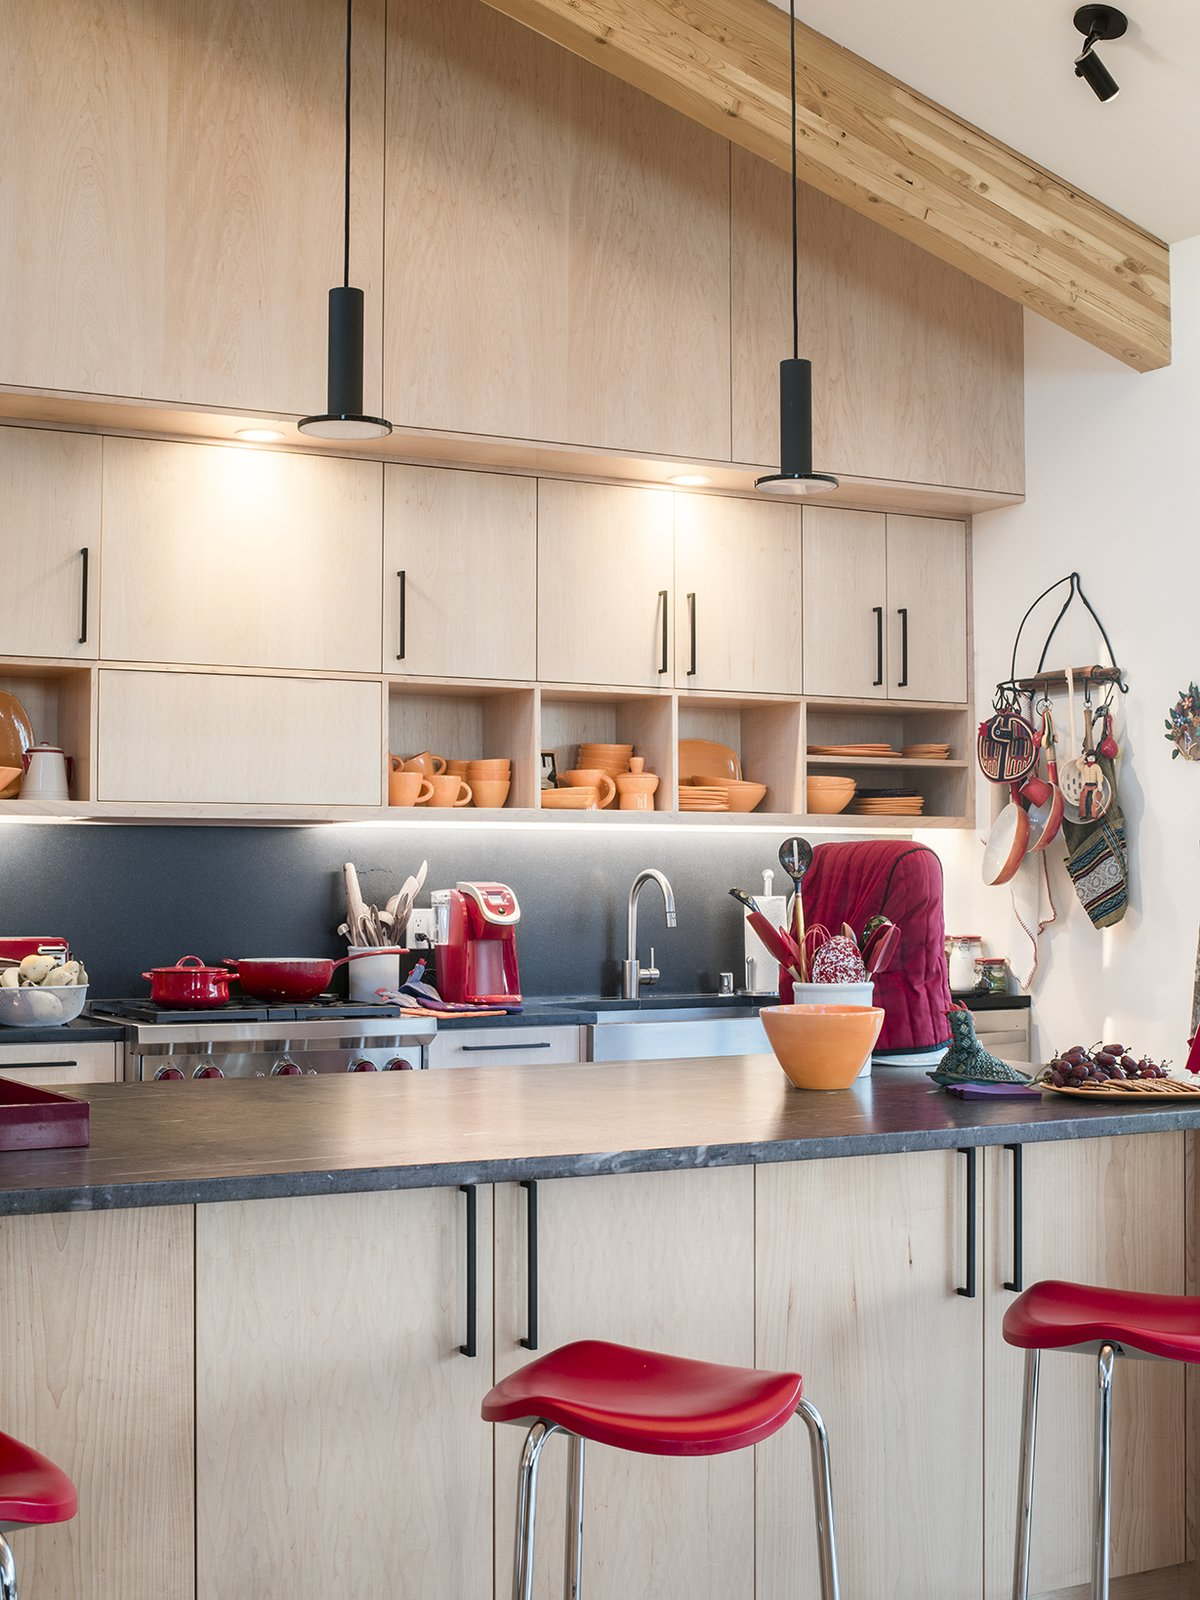 The kitchen cabinets hold dishes by Butterpie Productions. Tagged: Kitchen, Ceiling Lighting, Drop In Sink, Range, and Wood Cabinet. A Rookie Designer and Her Builder Father Create an Artist's Sculptural Loft in the Desert - Photo 5 of 11